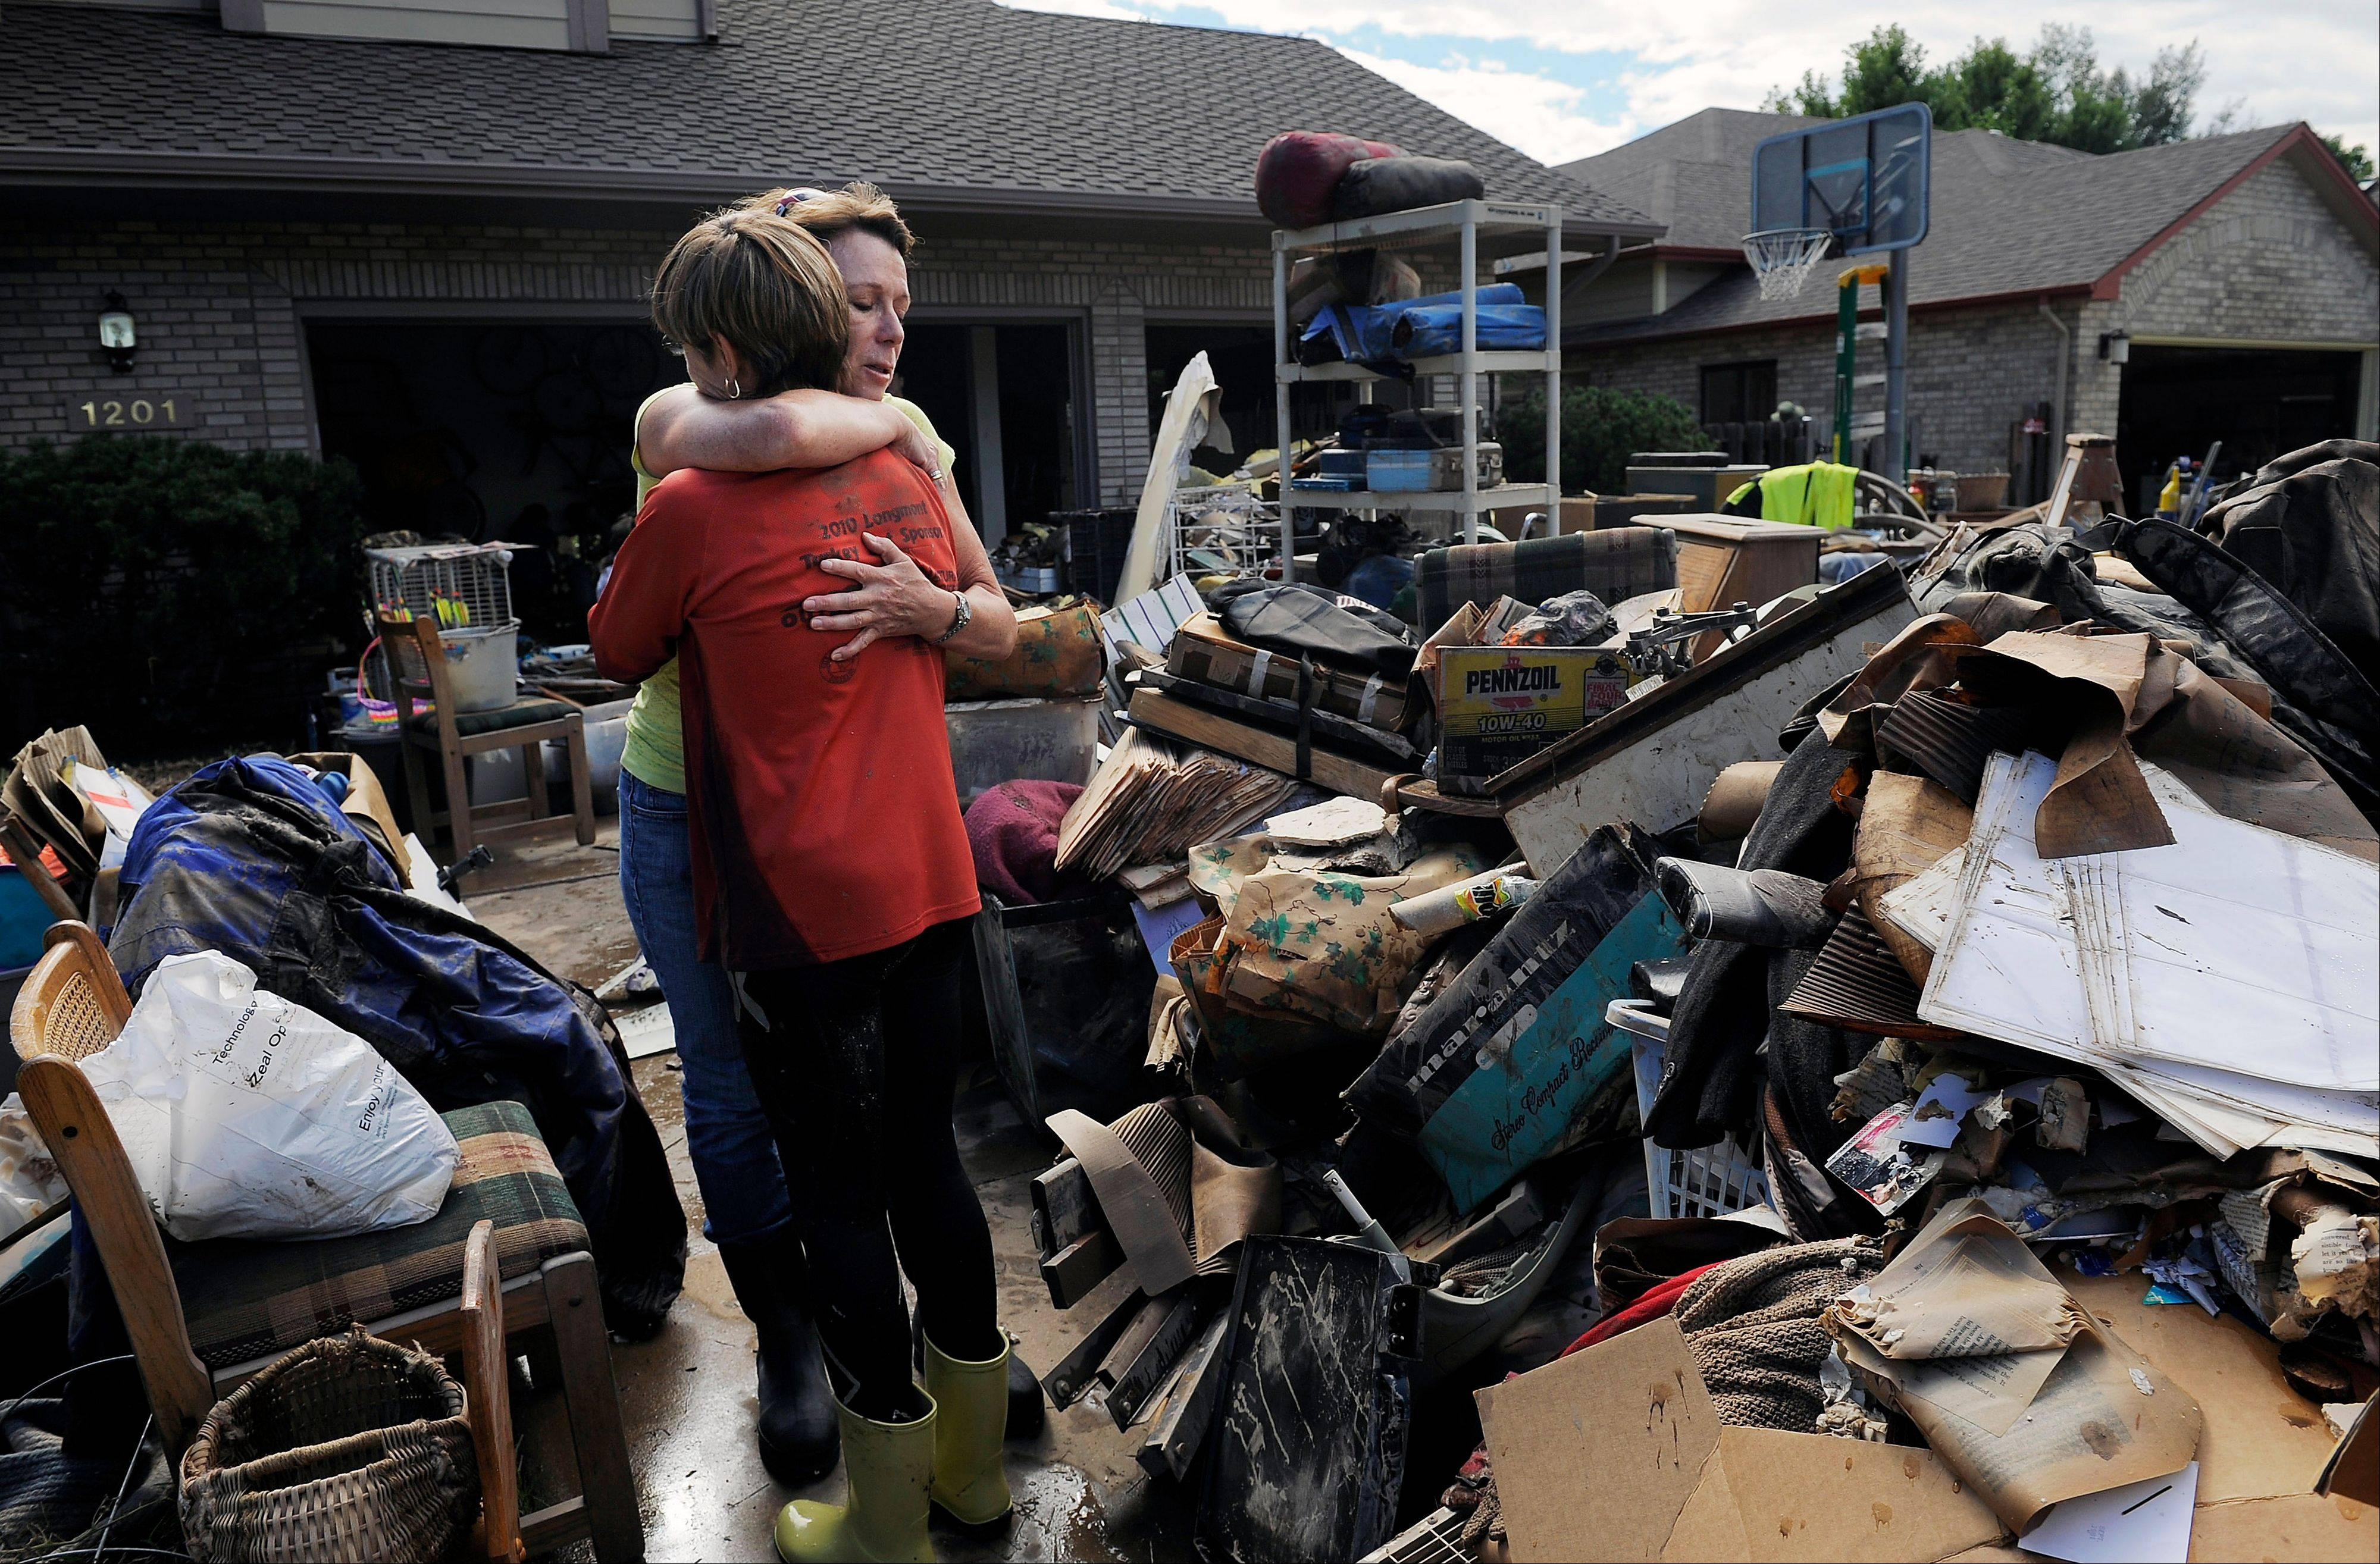 Homeowner Chris Ringdahl, left, is comforted by family friend Katherine MacIntosh, right, in front of her possessions as they cleanup from the floodwaters in Longmont, Colo., on Monday, Sept. 16, 2013. Floodwaters have affected a 4,500 square-mile section of the state inundating entire neighborhoods and destroying bridges and roads.